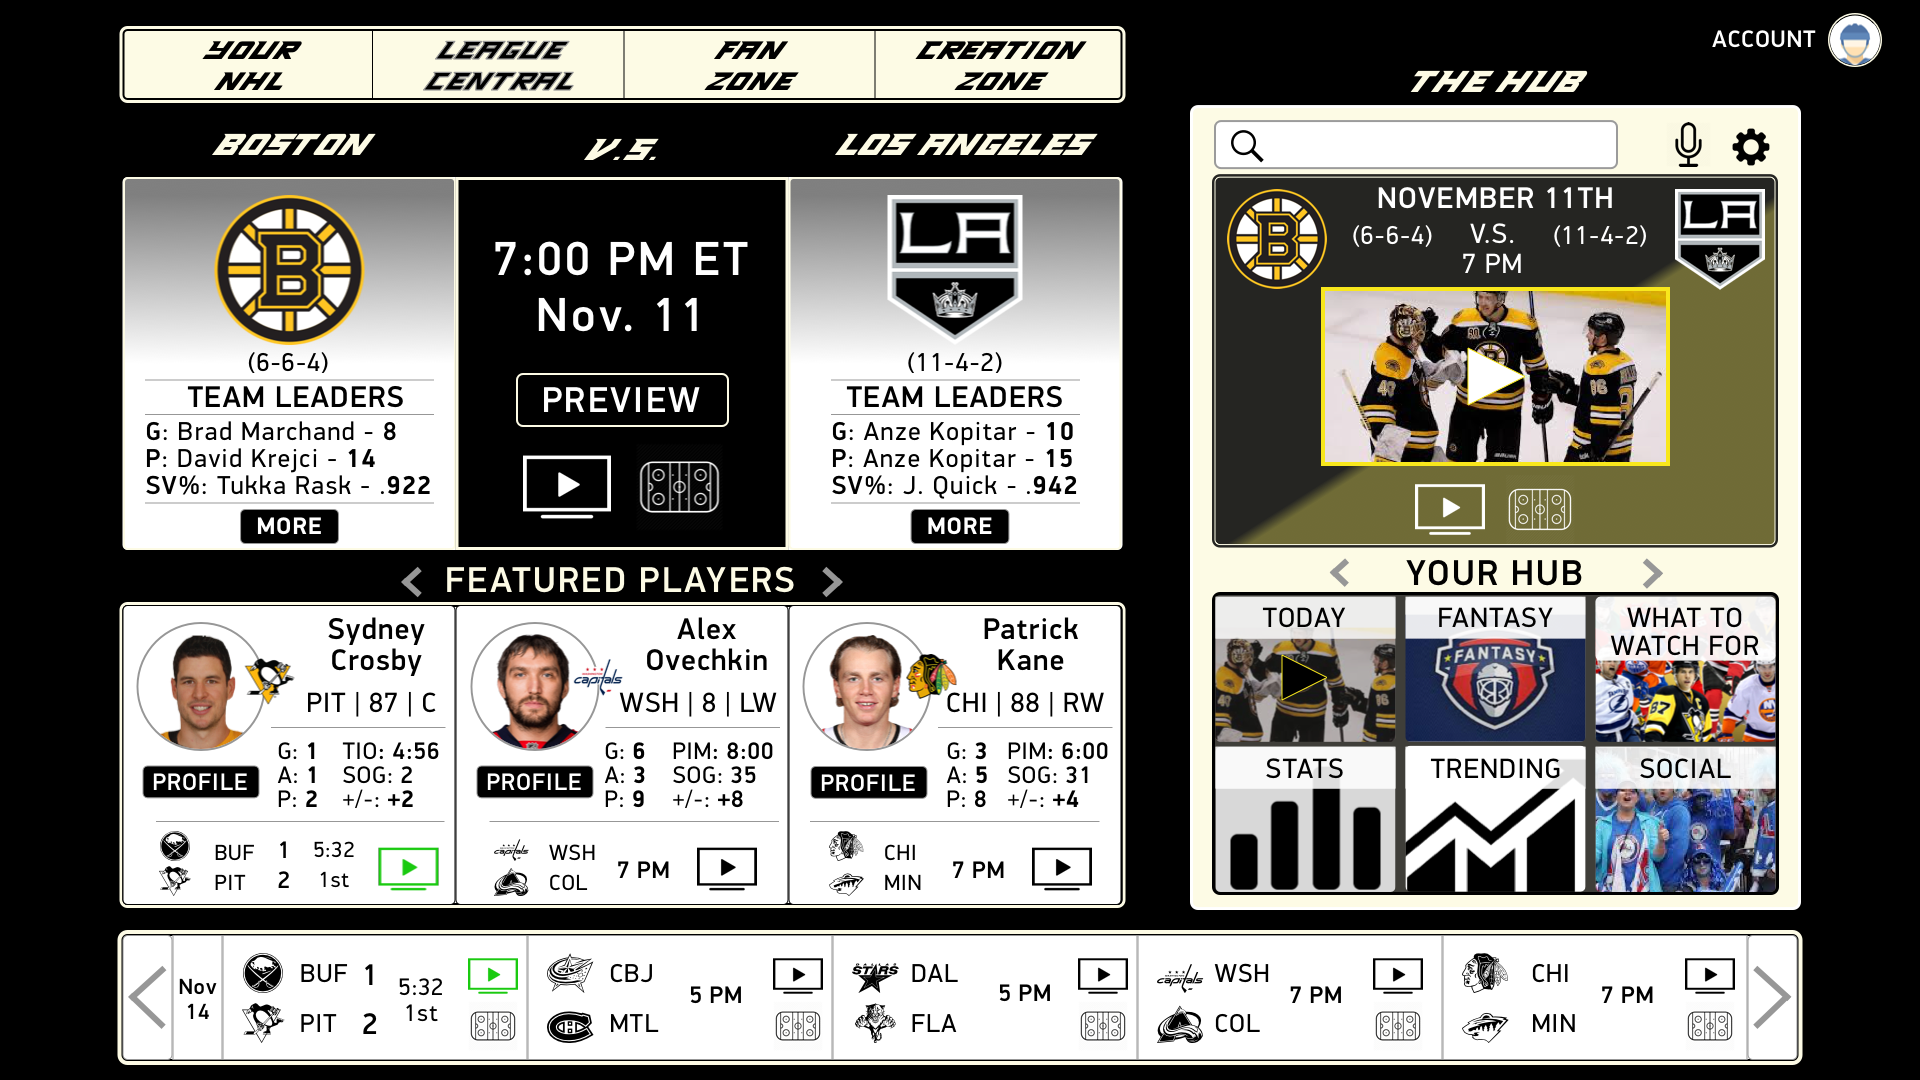 2  nhl your home featured players hi-fi.png